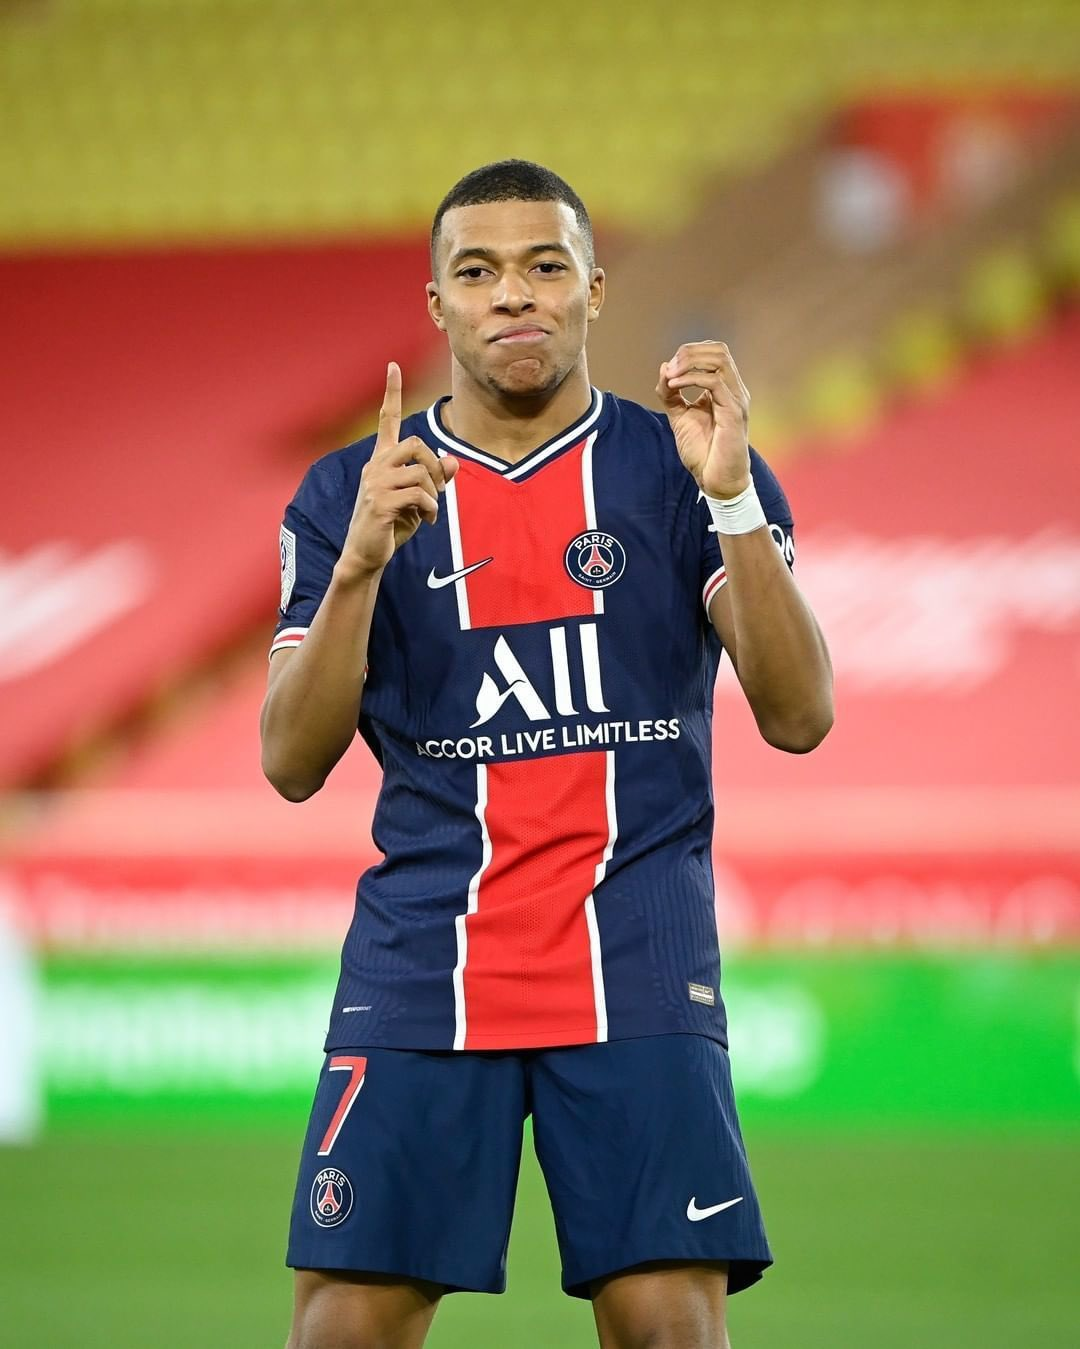 Kylian Mbappe's move to Real Madrid